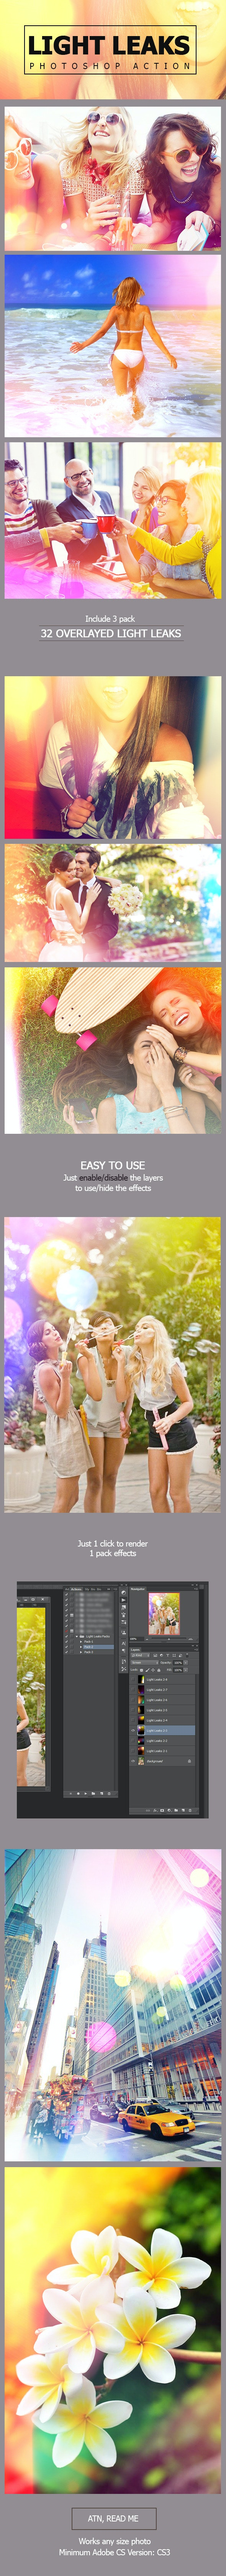 Light Leaks Photoshop Action - Photo Effects Actions